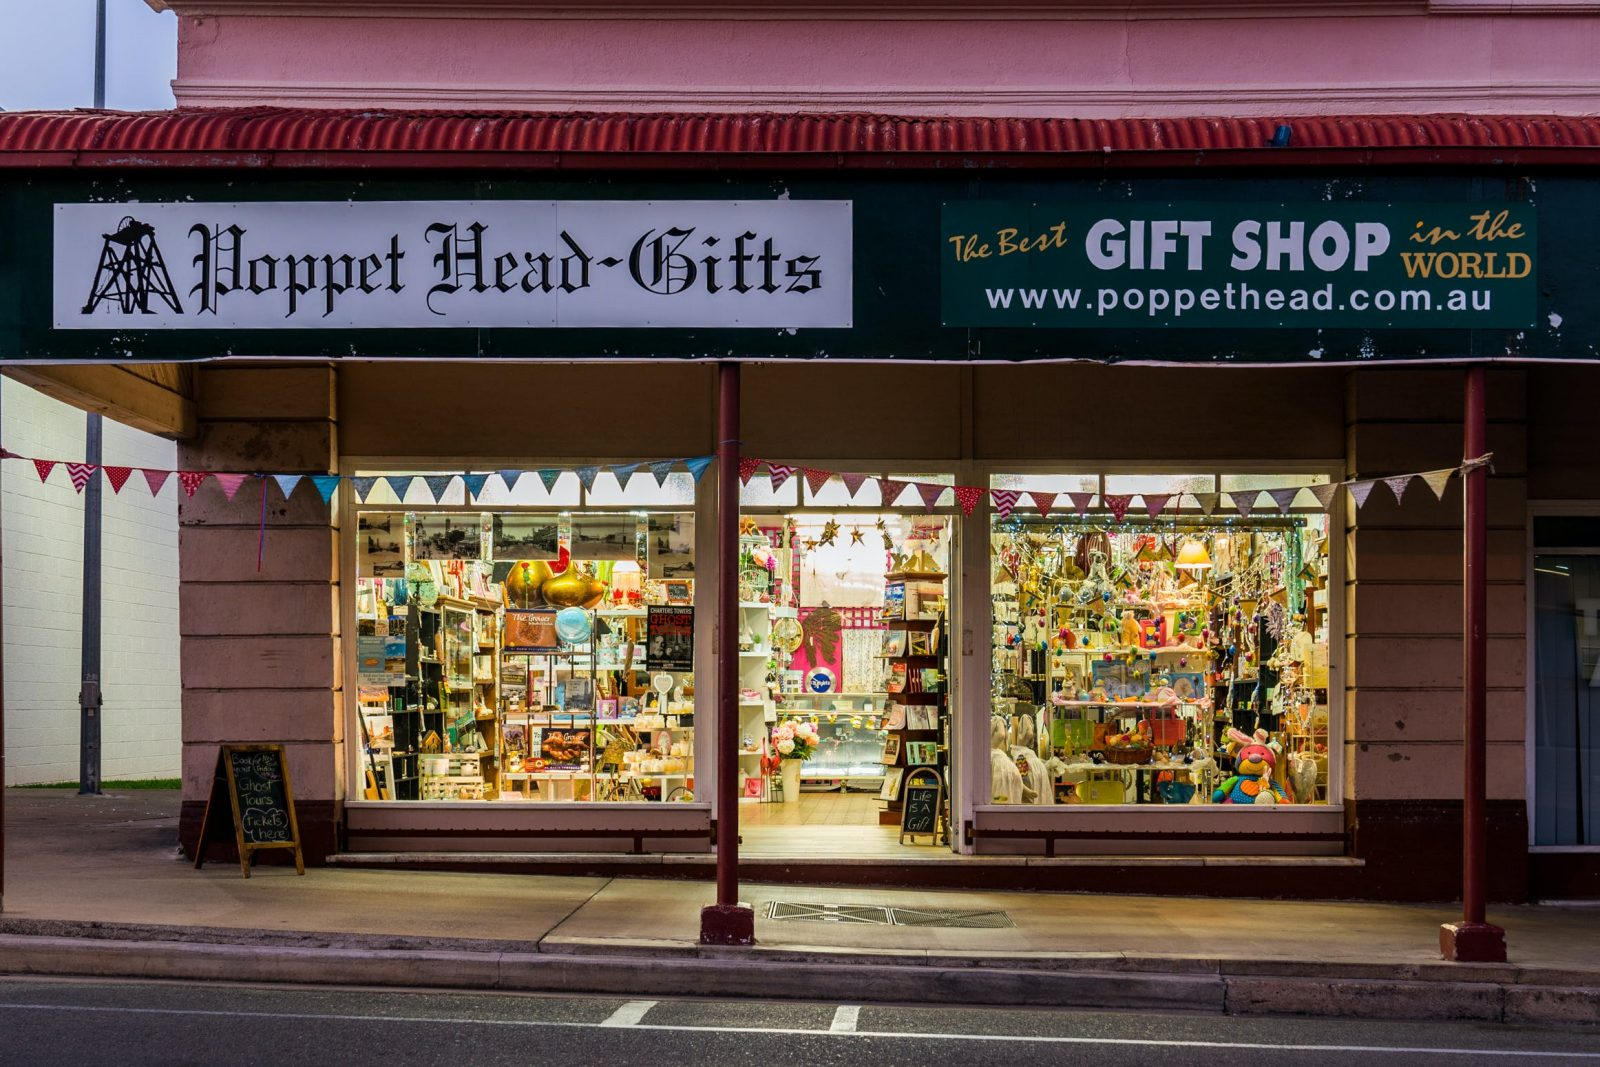 Poppet Head is the Best Gift Shop in the World